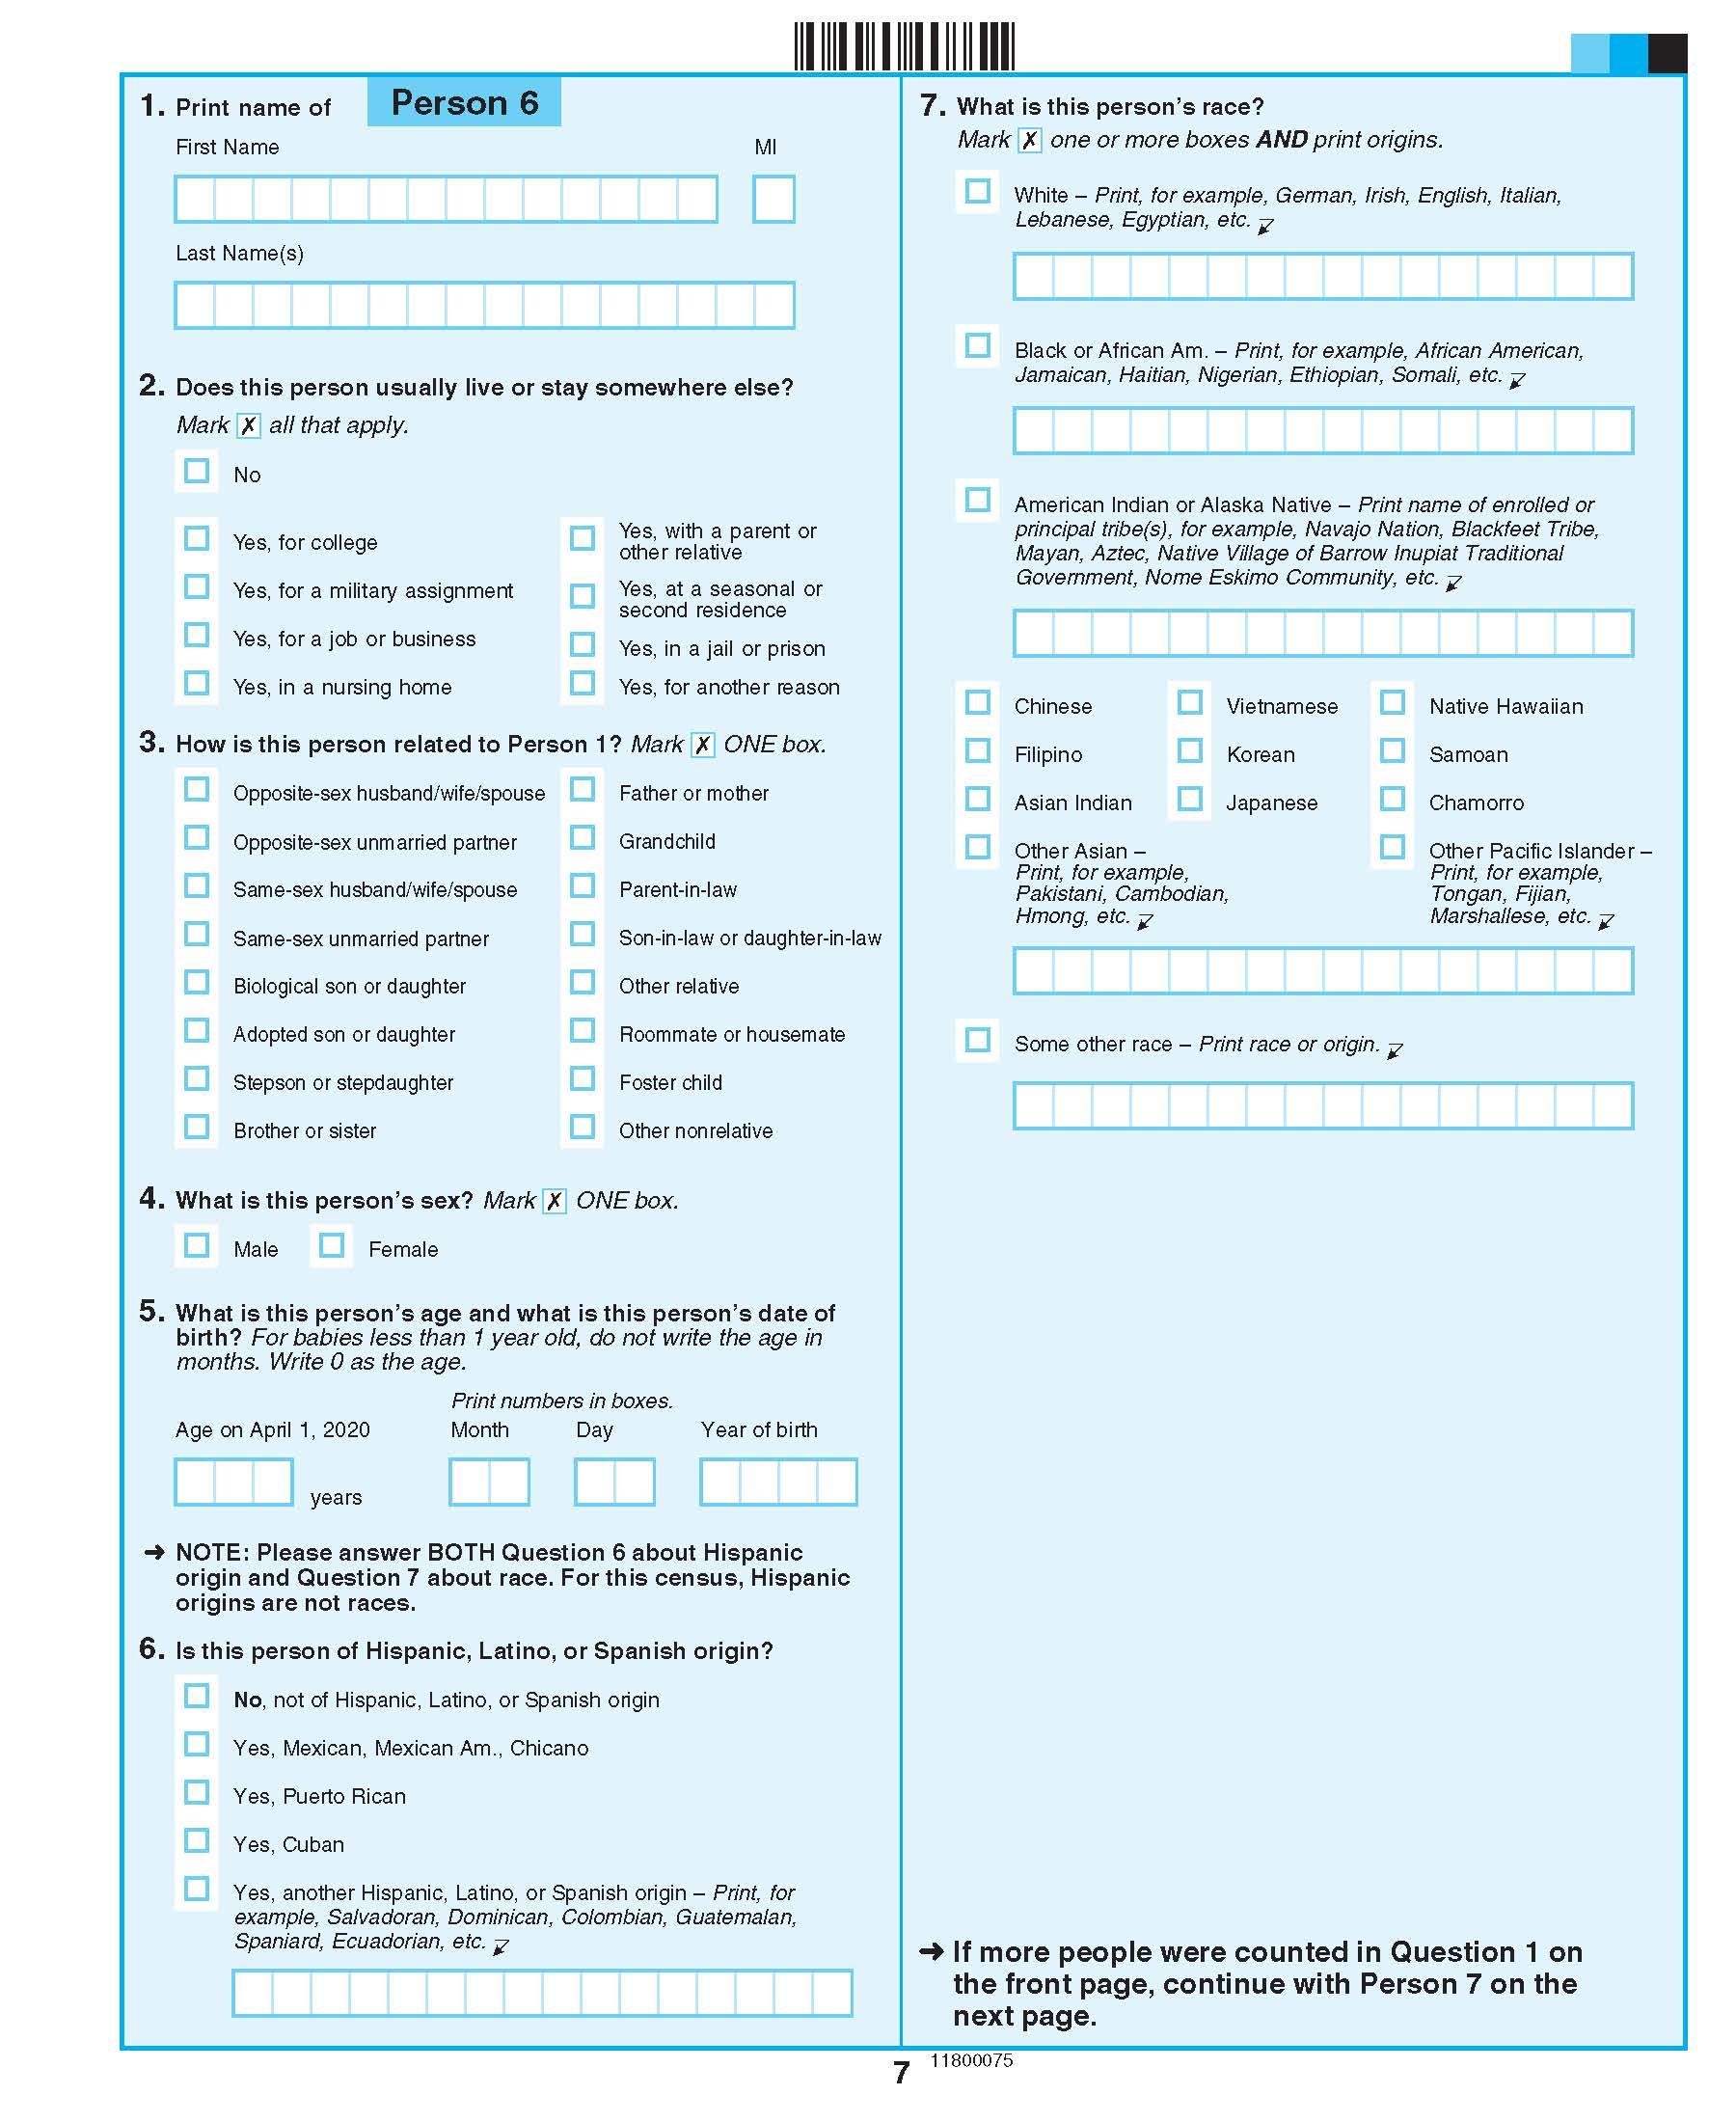 2020 Census Questionnaire_Page_7